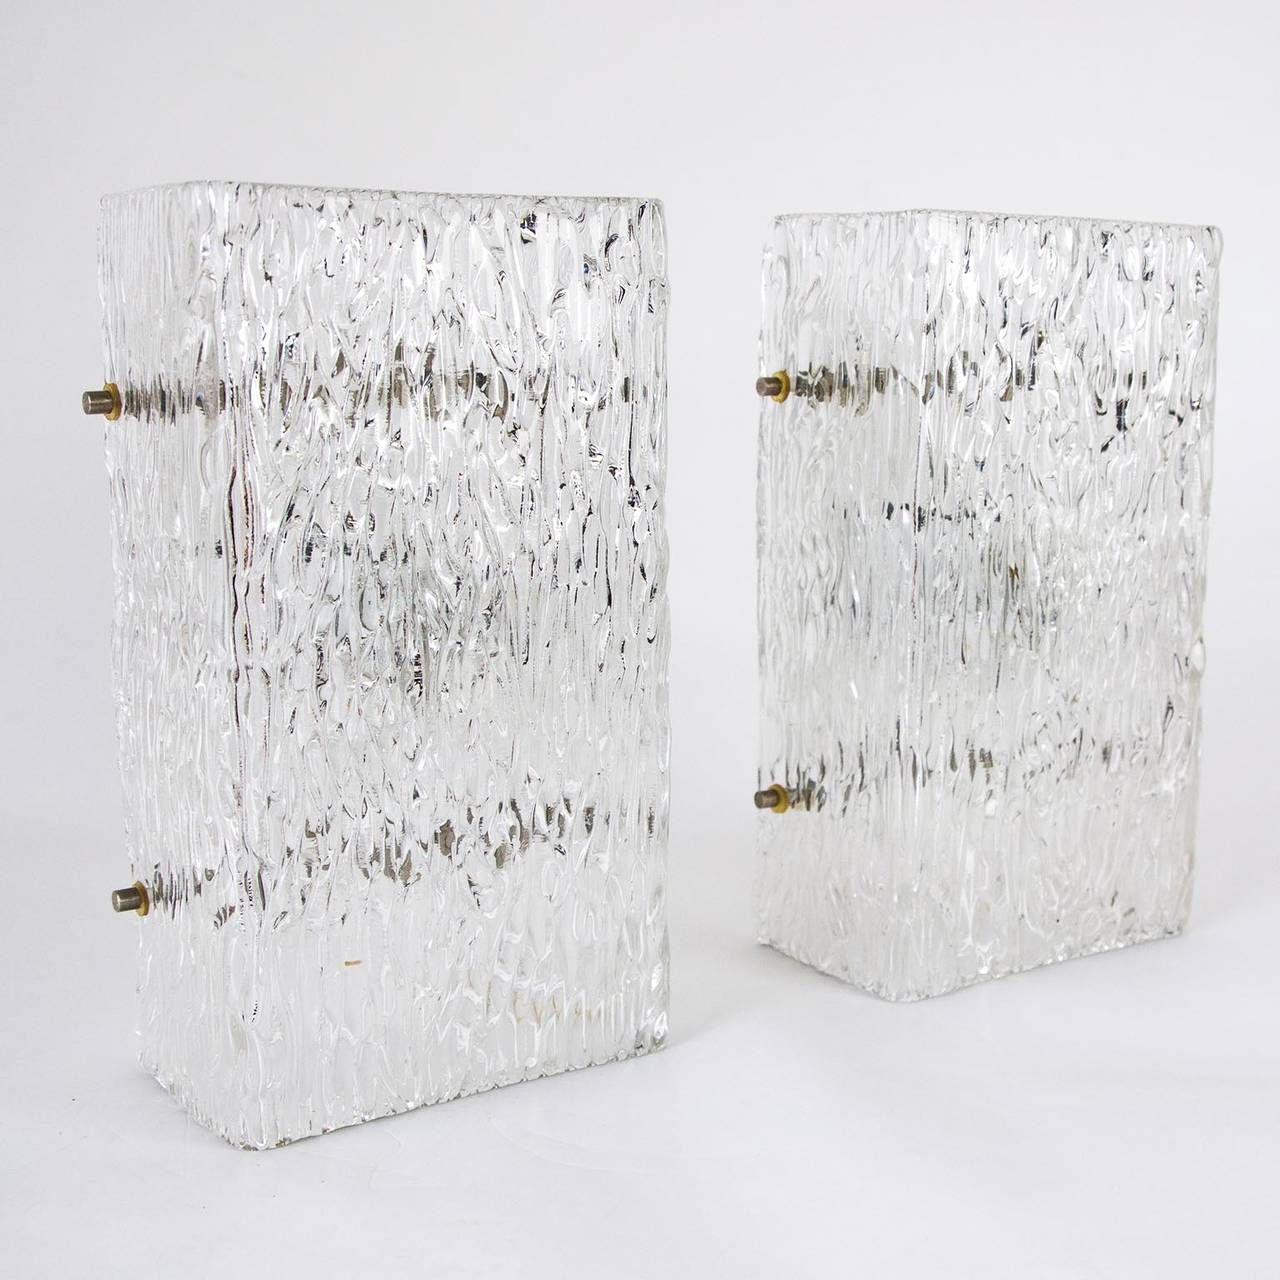 Beautiful pair of large 1950s glass sconces or wall lamps by J.T. Kalmar, Vienna, Austria. Thick textured glass creates a fantastic light effect. The chrome bolts can be replaced with brass ones if required.